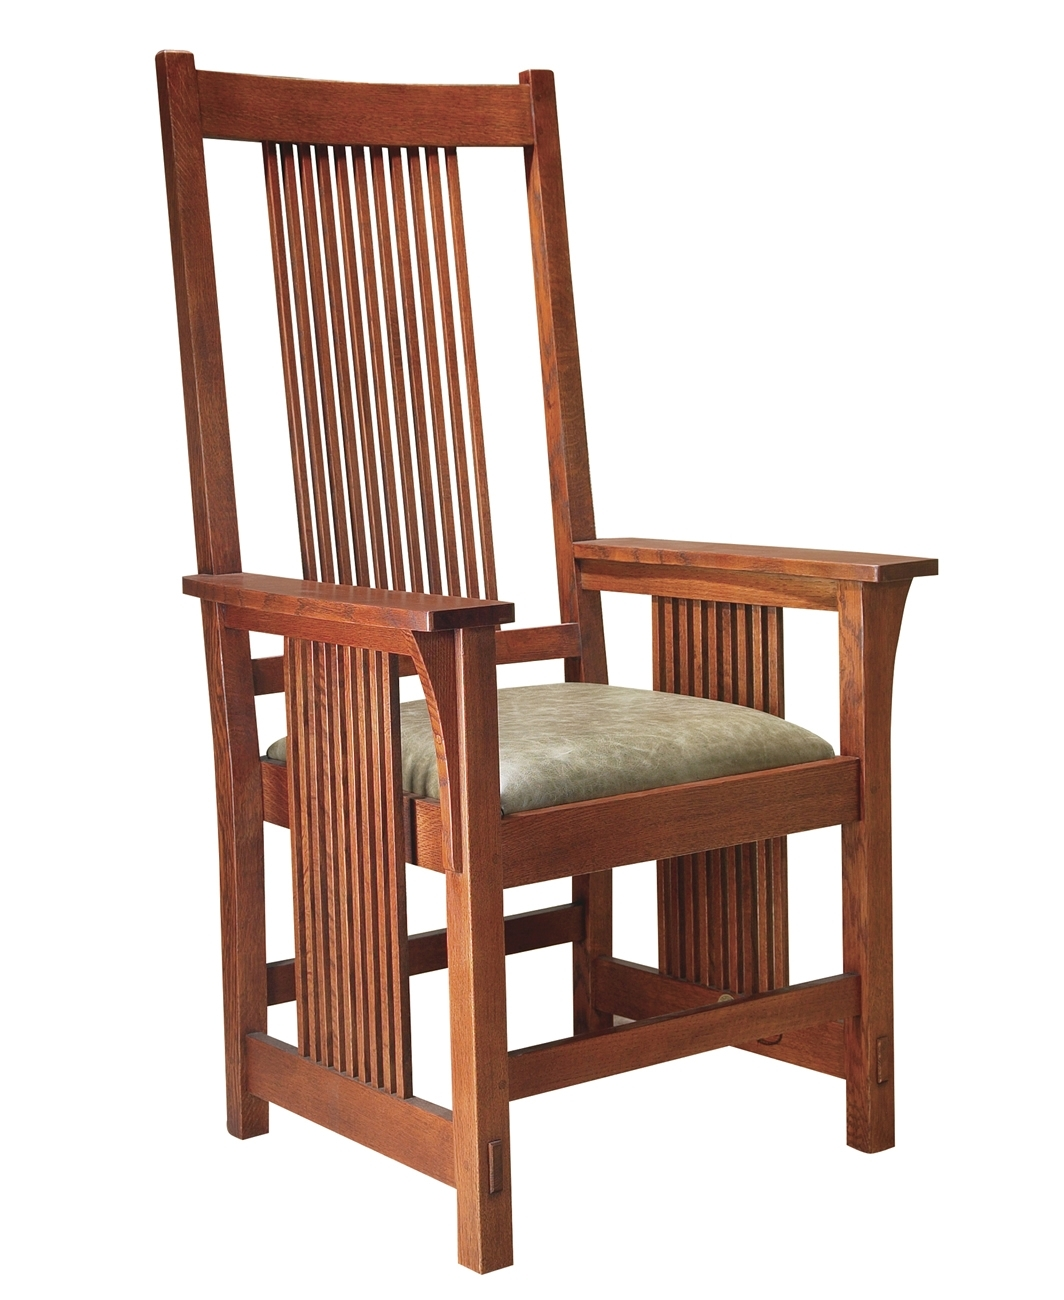 Well Known Candice Ii Slat Back Host Chairs Pertaining To Product List (View 16 of 20)